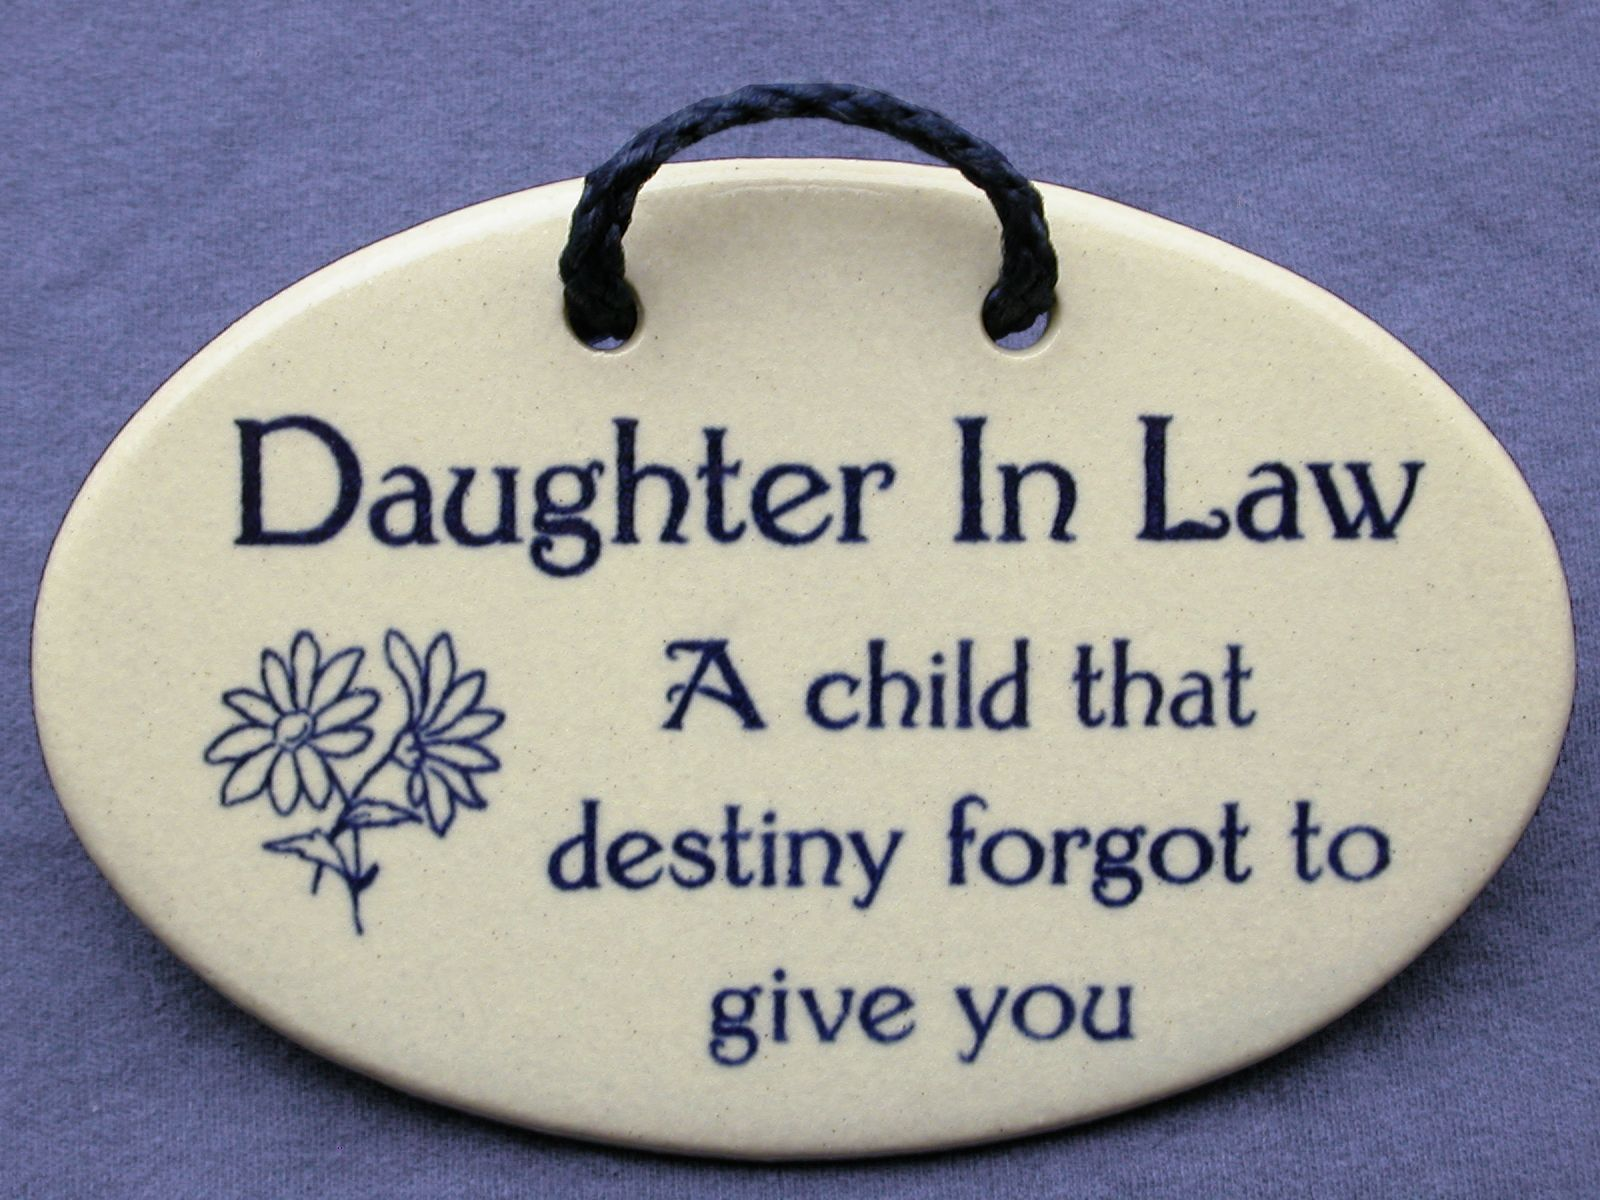 I Love My Granddaughter Quotes I Love My Daughter In Law Like My Own  She Is My Son's Love And